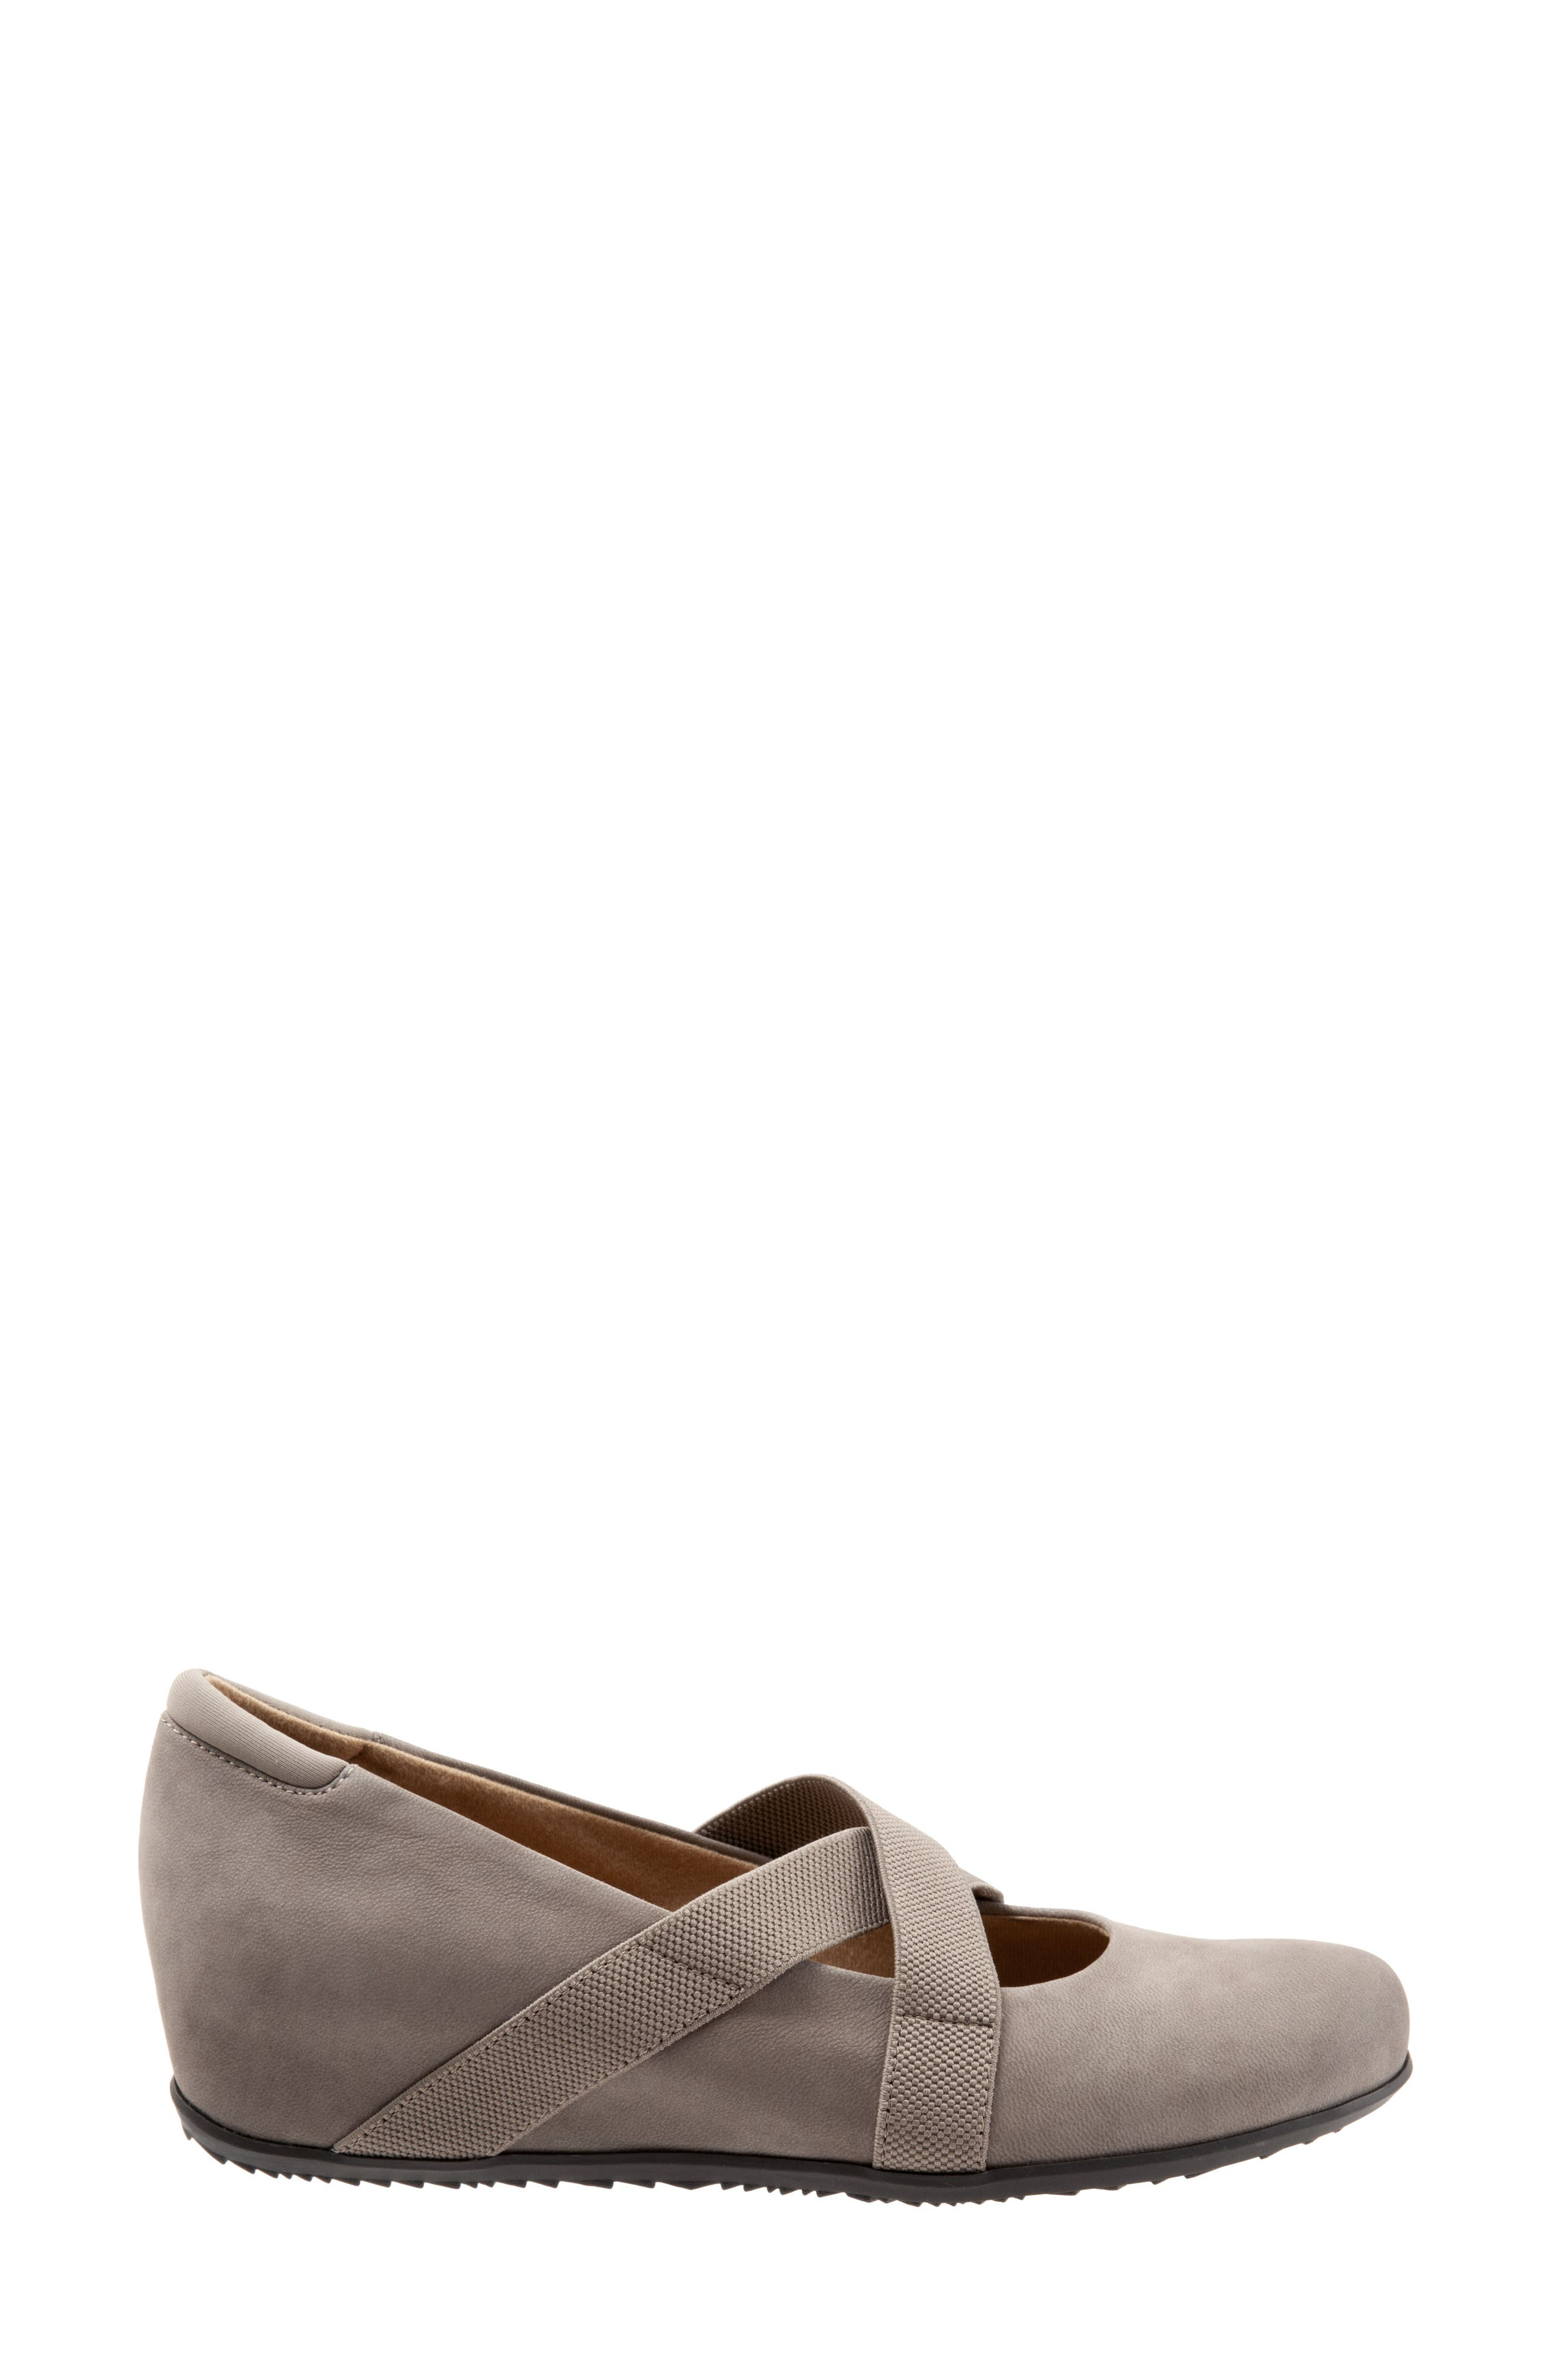 Waverly Mary Jane Wedge,                             Alternate thumbnail 3, color,                             TAUPE LEATHER